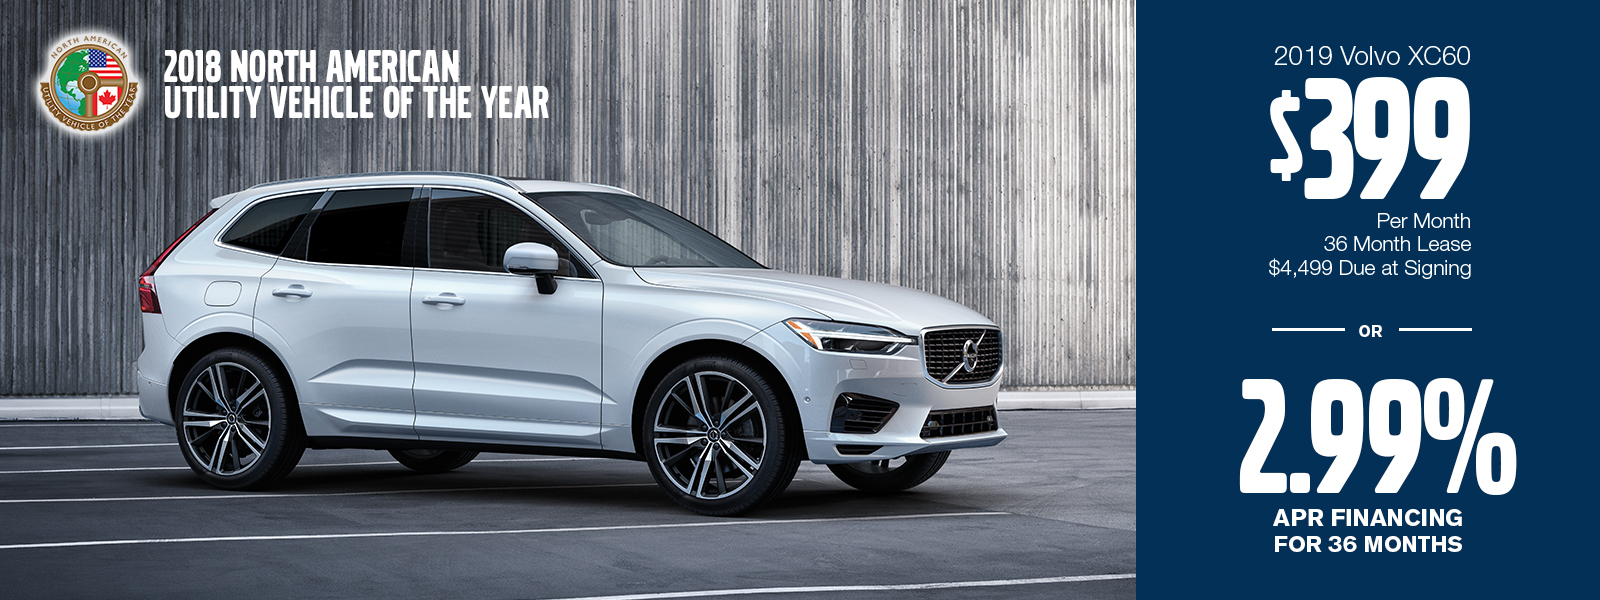 2019 Volvo XC60 T5 Momentum FWD Lease or Finance Special in Gilbert, AZ